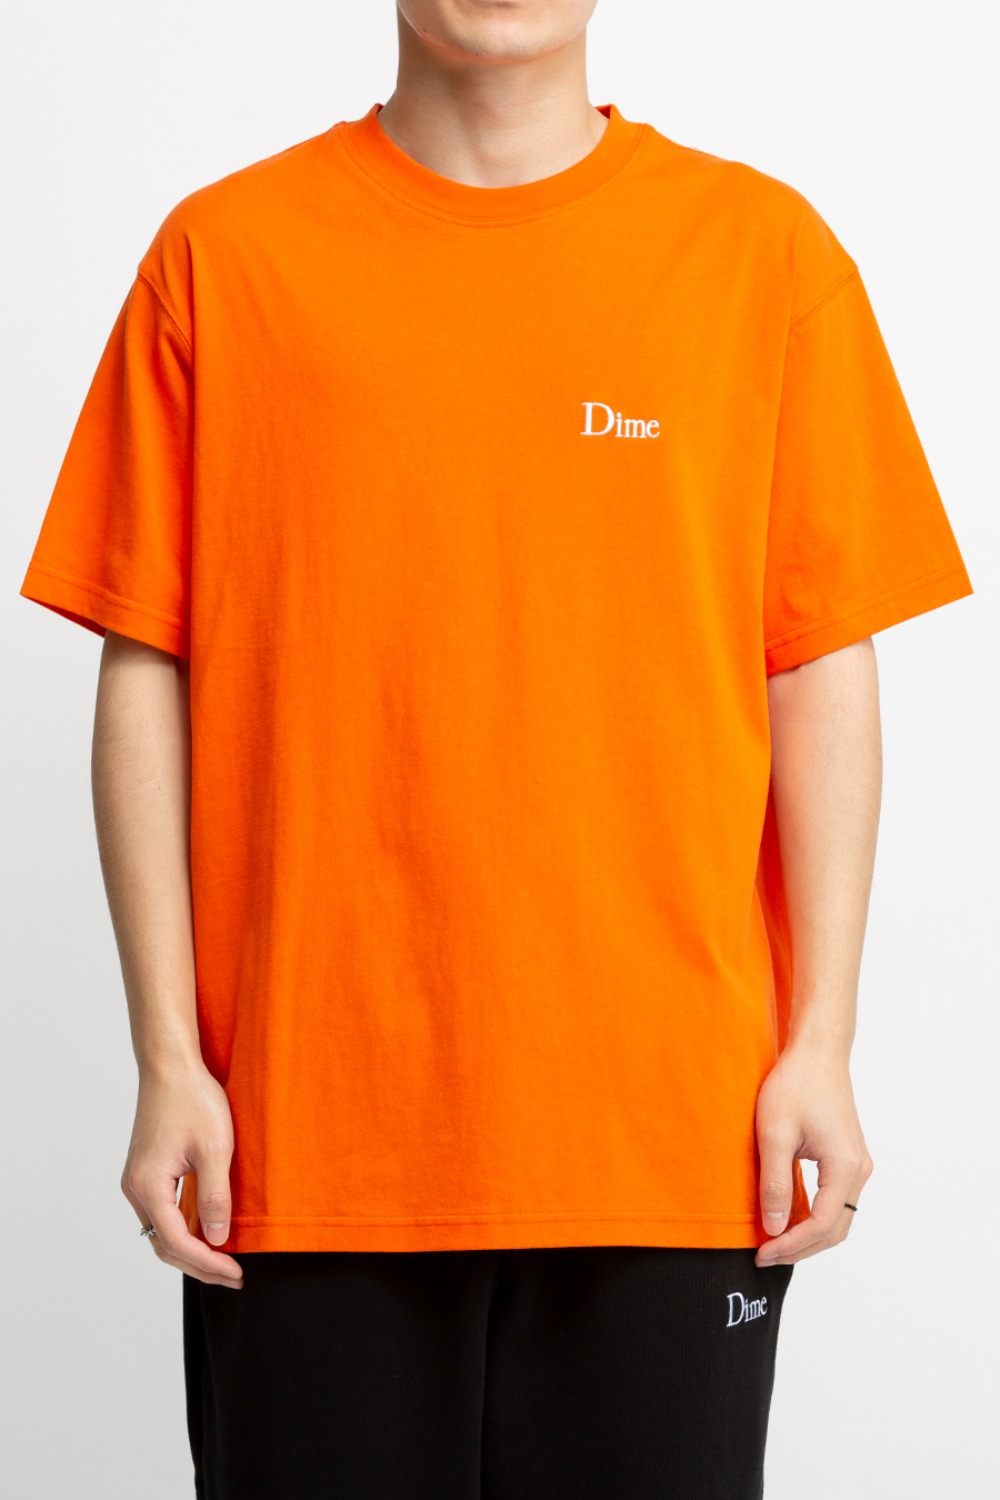 DIME CLASSIC SMALL LOGO T-SHIRT ORANGE